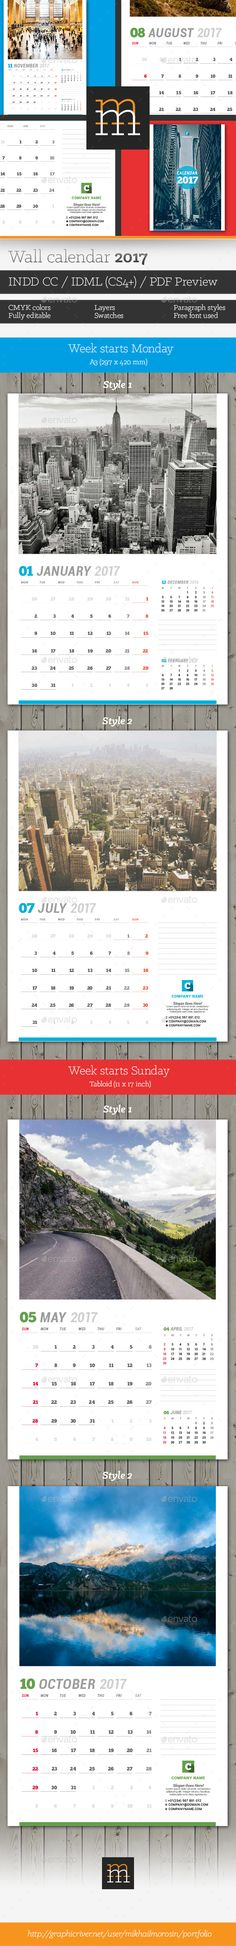 Calendars Vol 2 Calendar design, Print templates and Font logo - Indesign Calendar Template